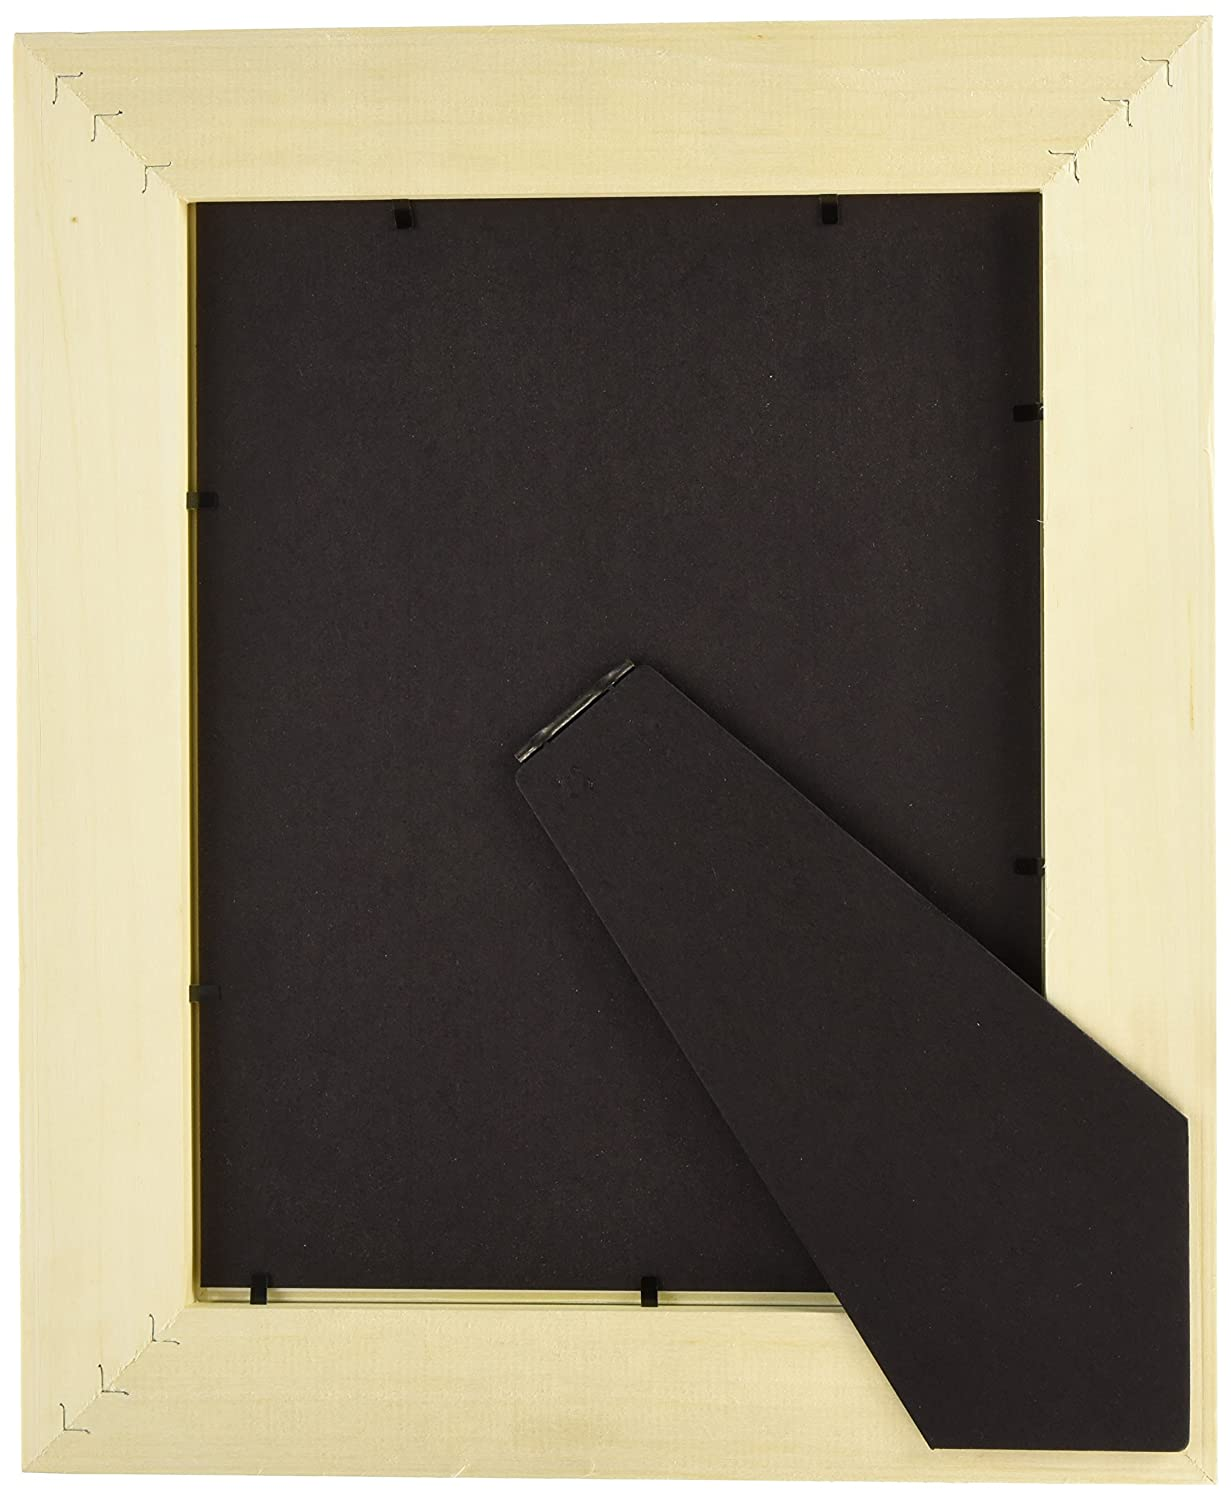 2 Inches Frame USA 1748 8.5x11 DIY Picture Frame